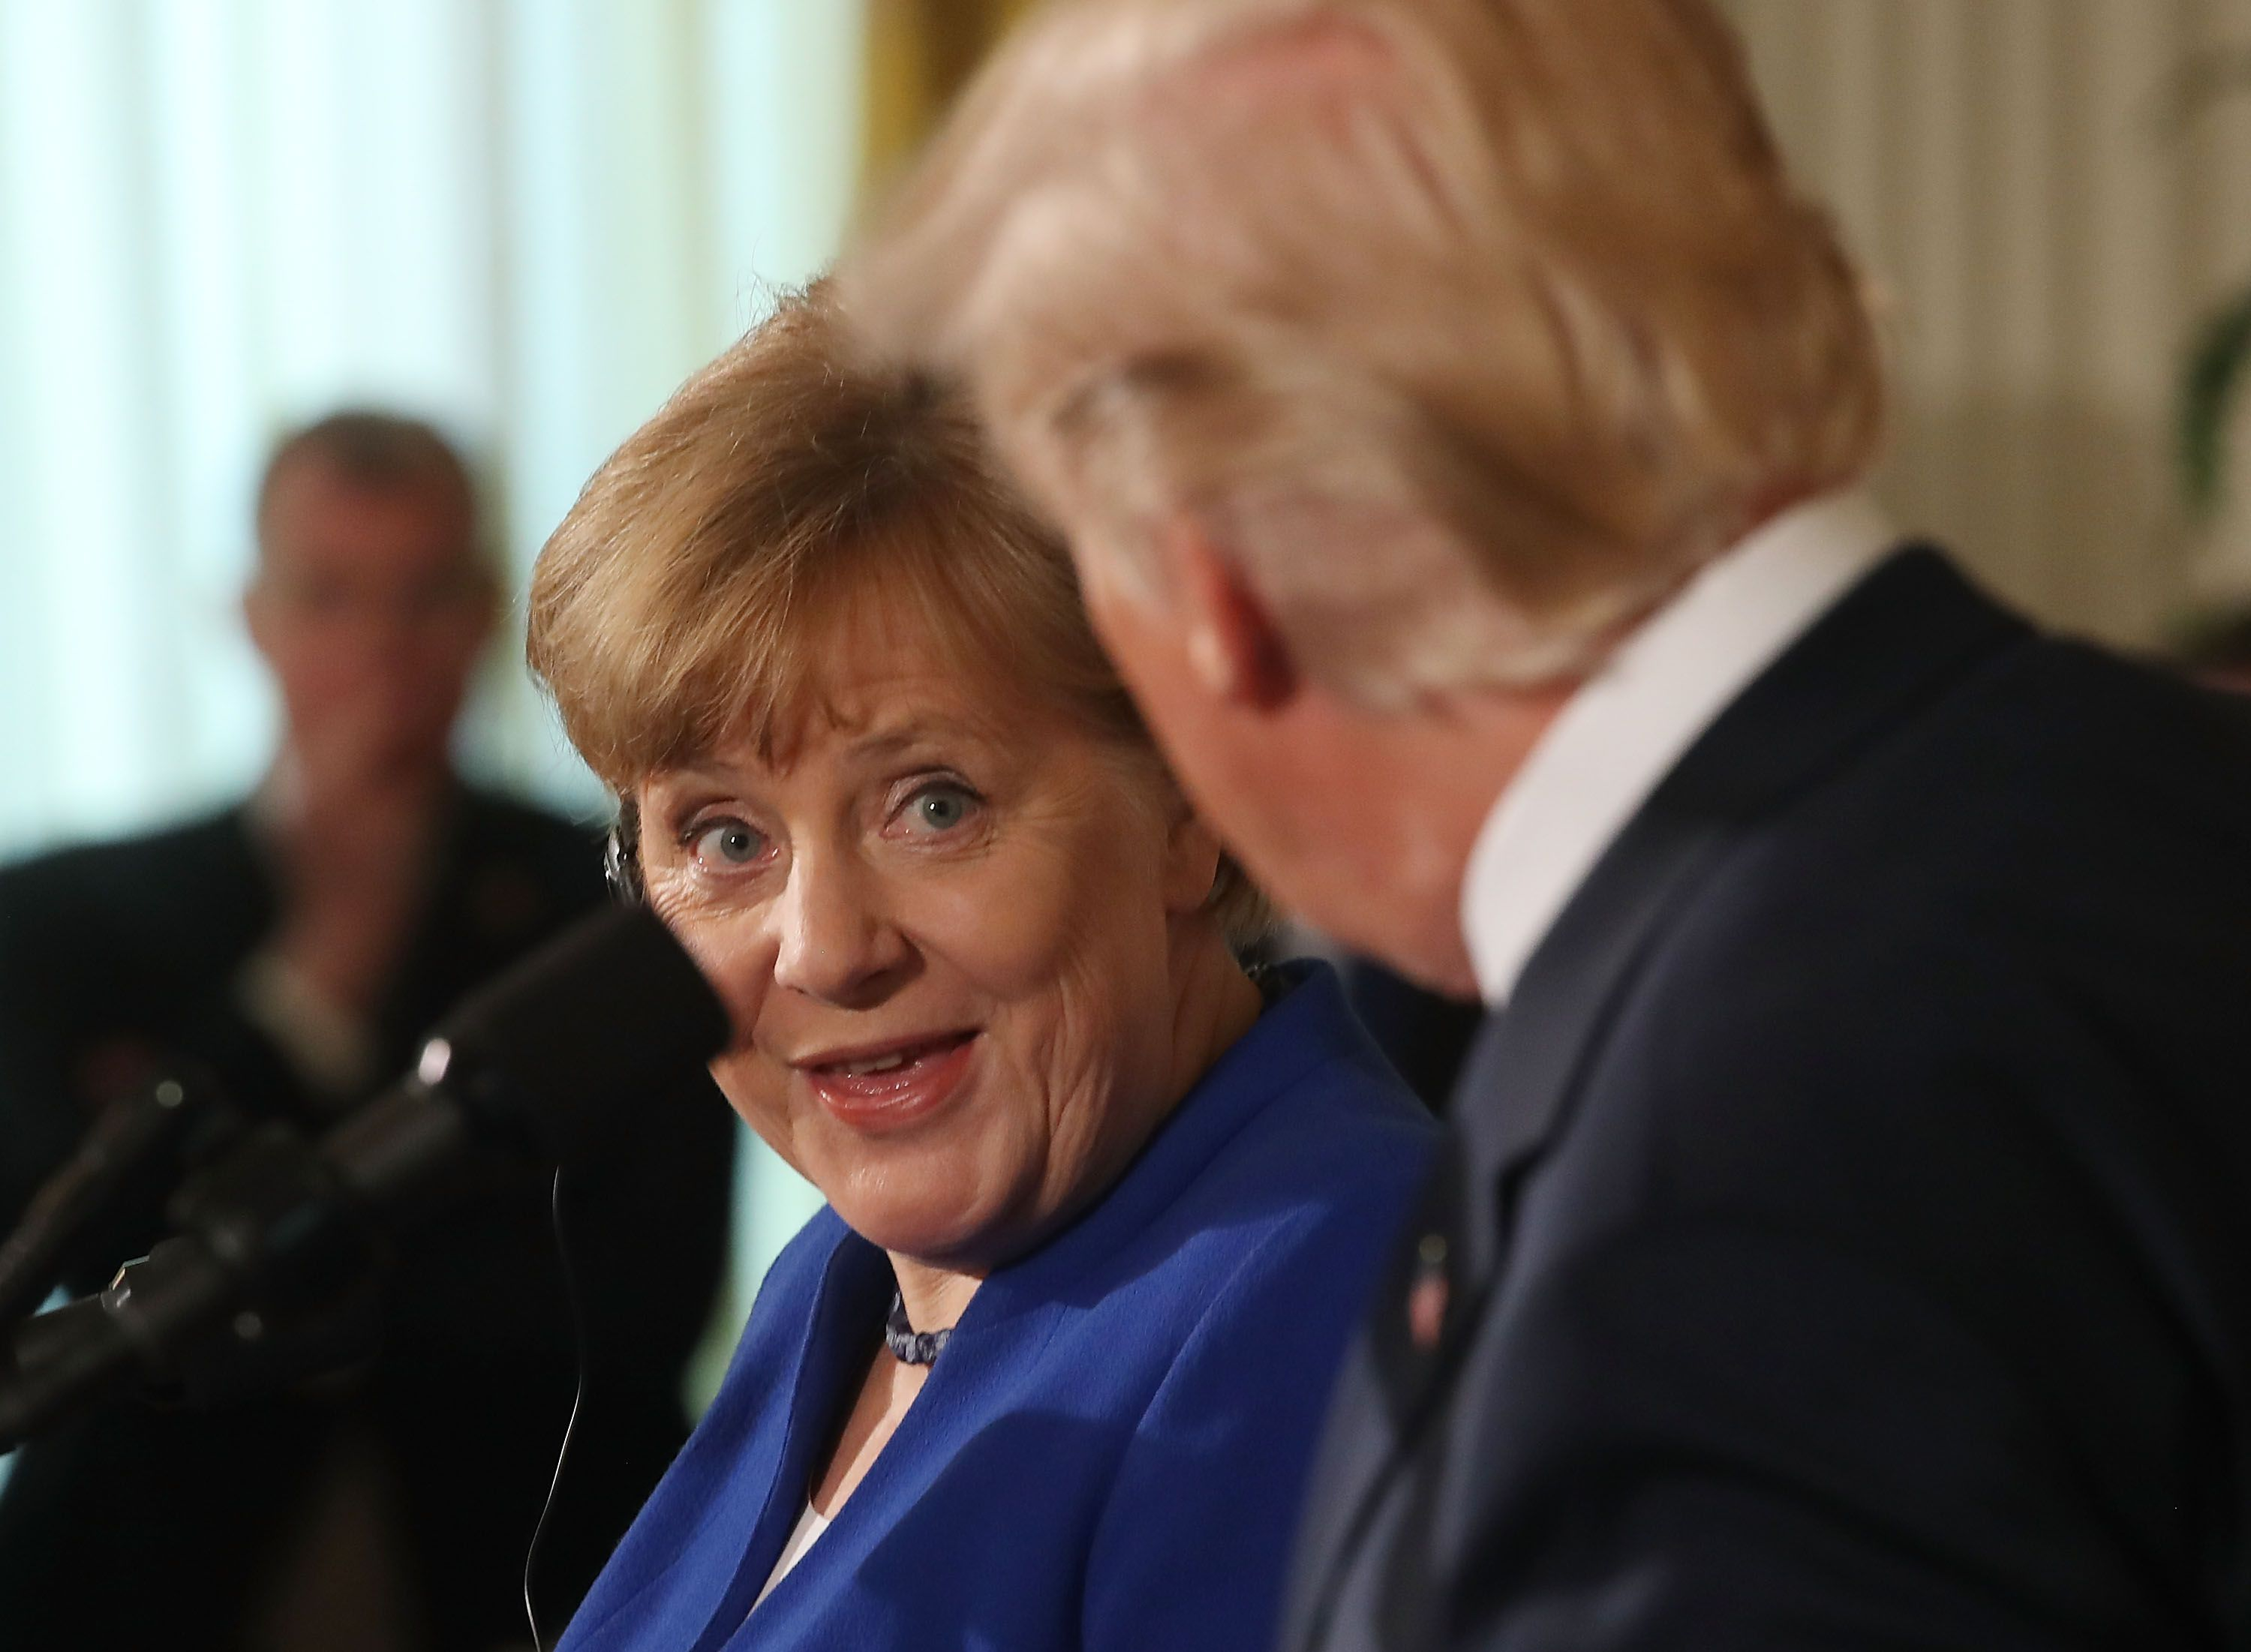 Merkel looks at Trump with surprised expression, mouth agape.